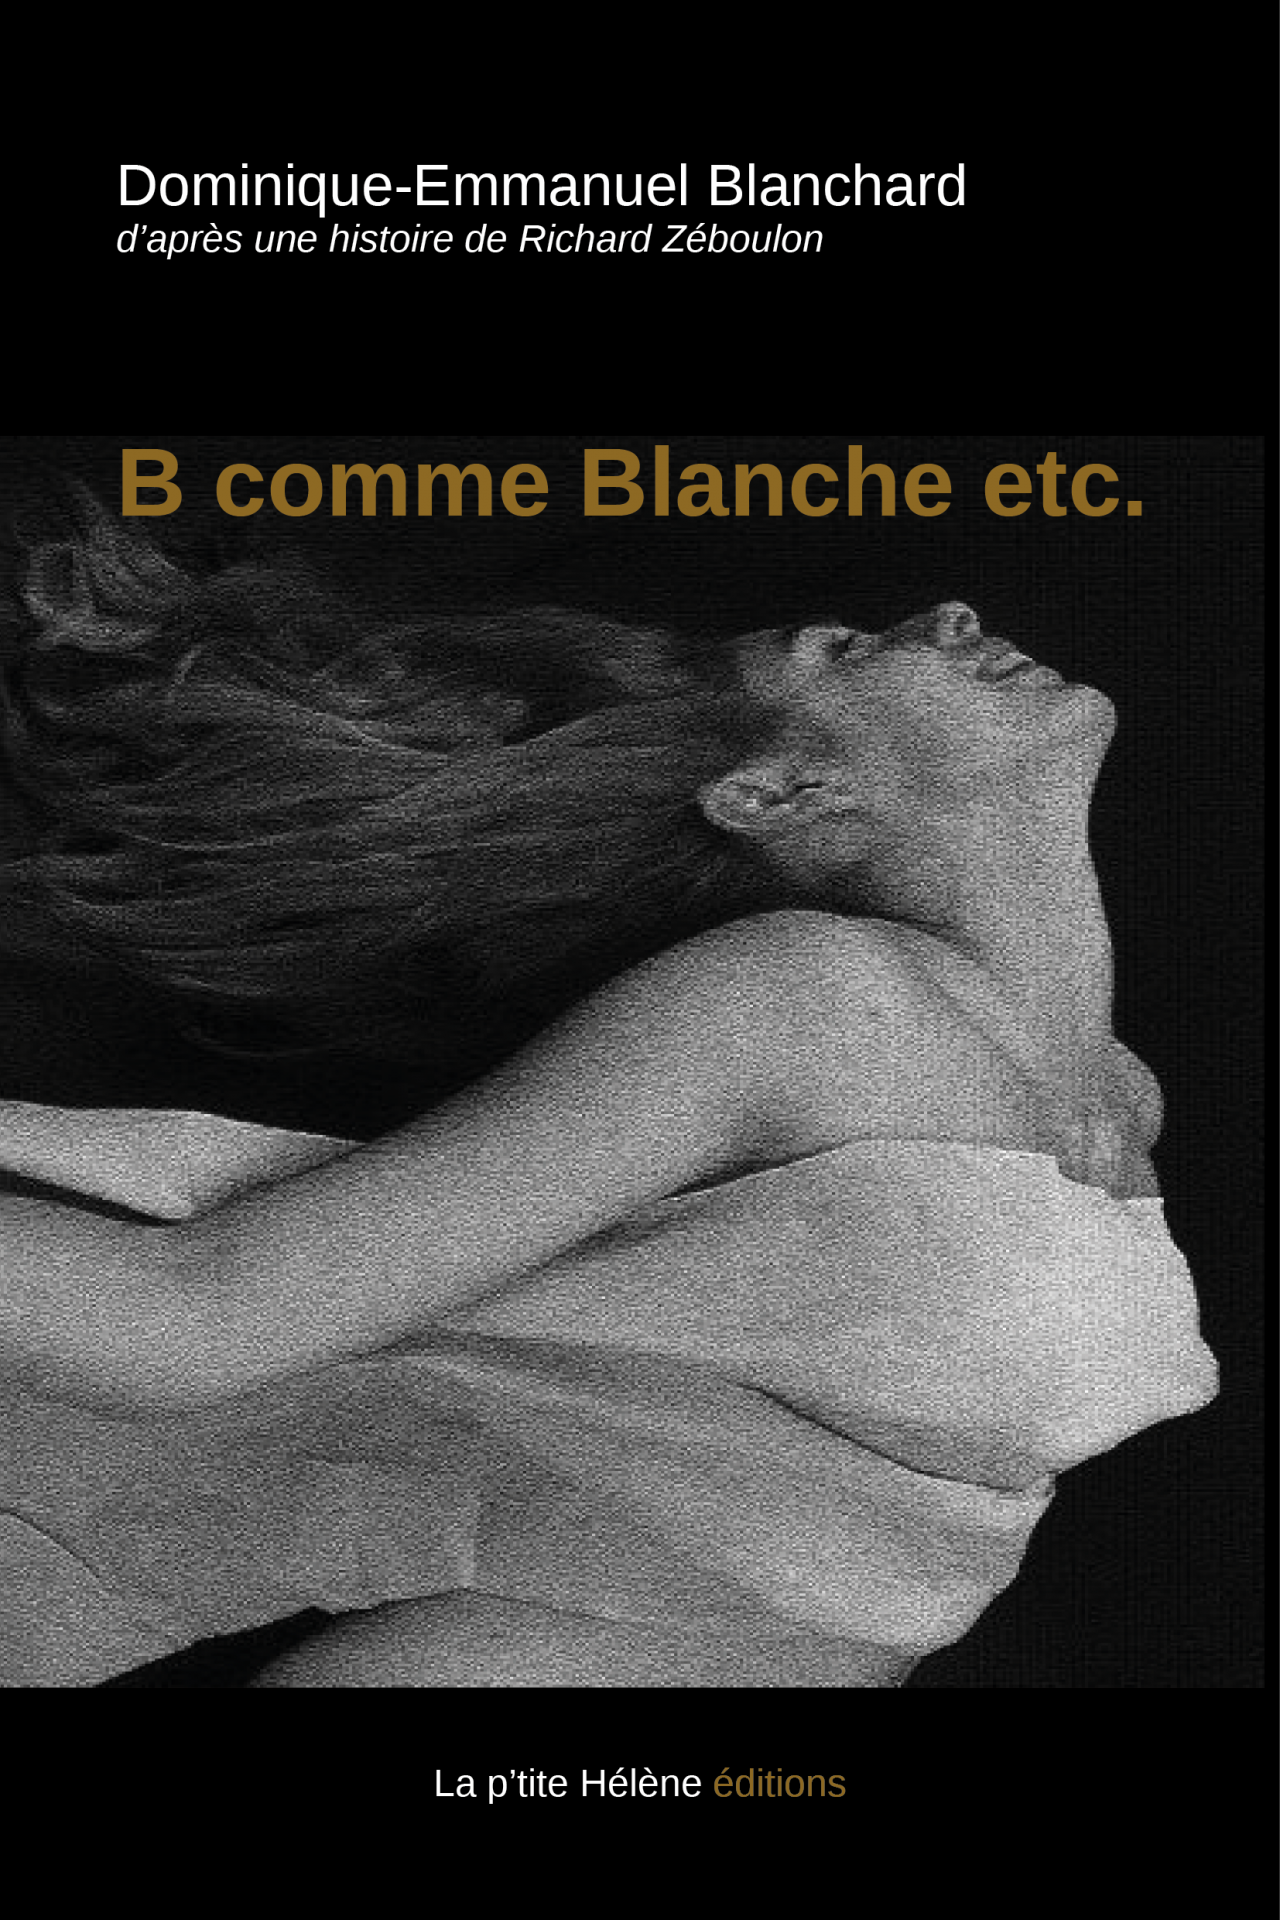 Couv blanche 9